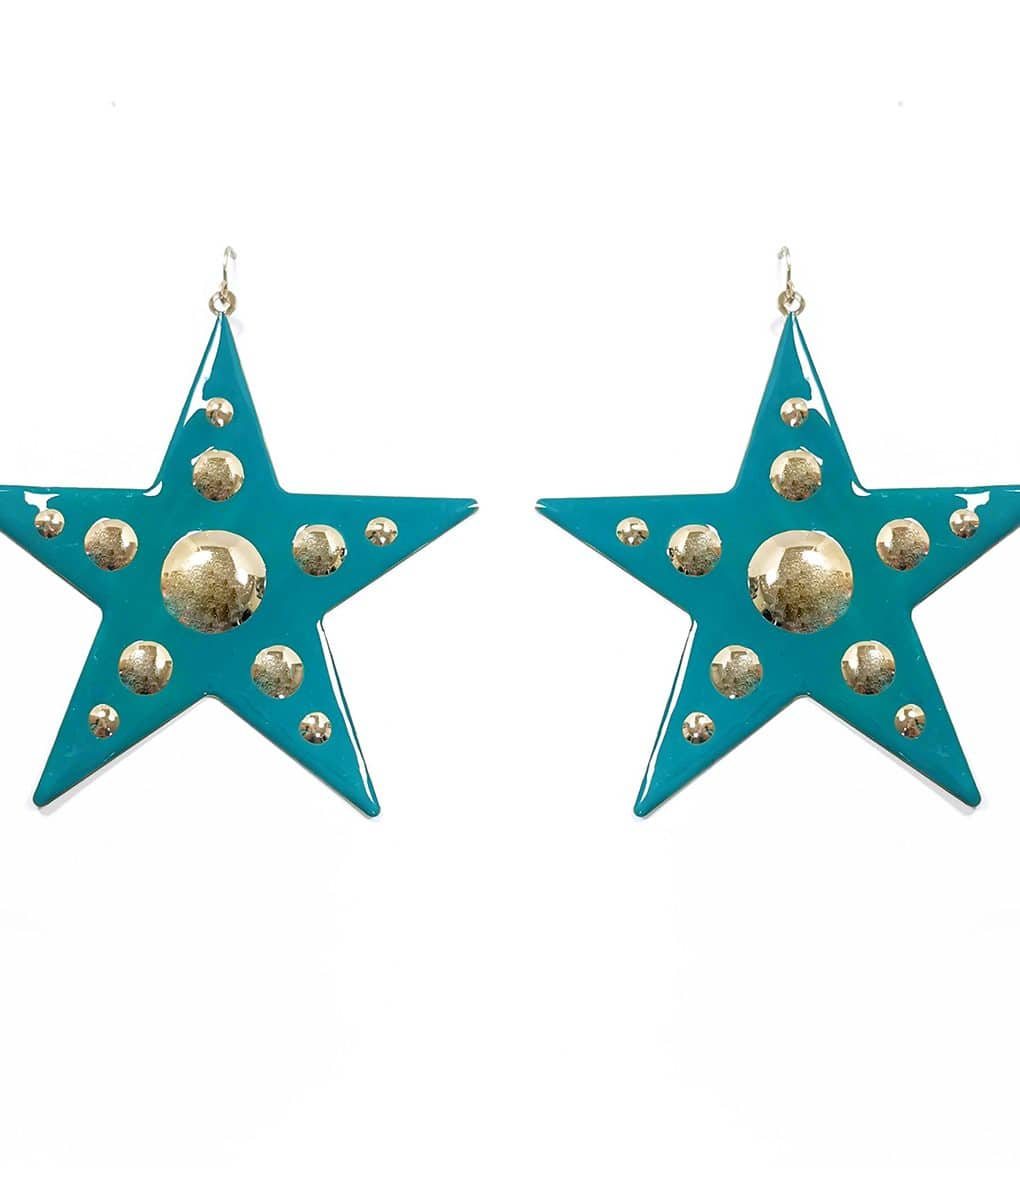 Teal-and-gold-metal-star-earrings-Alila-Ireland